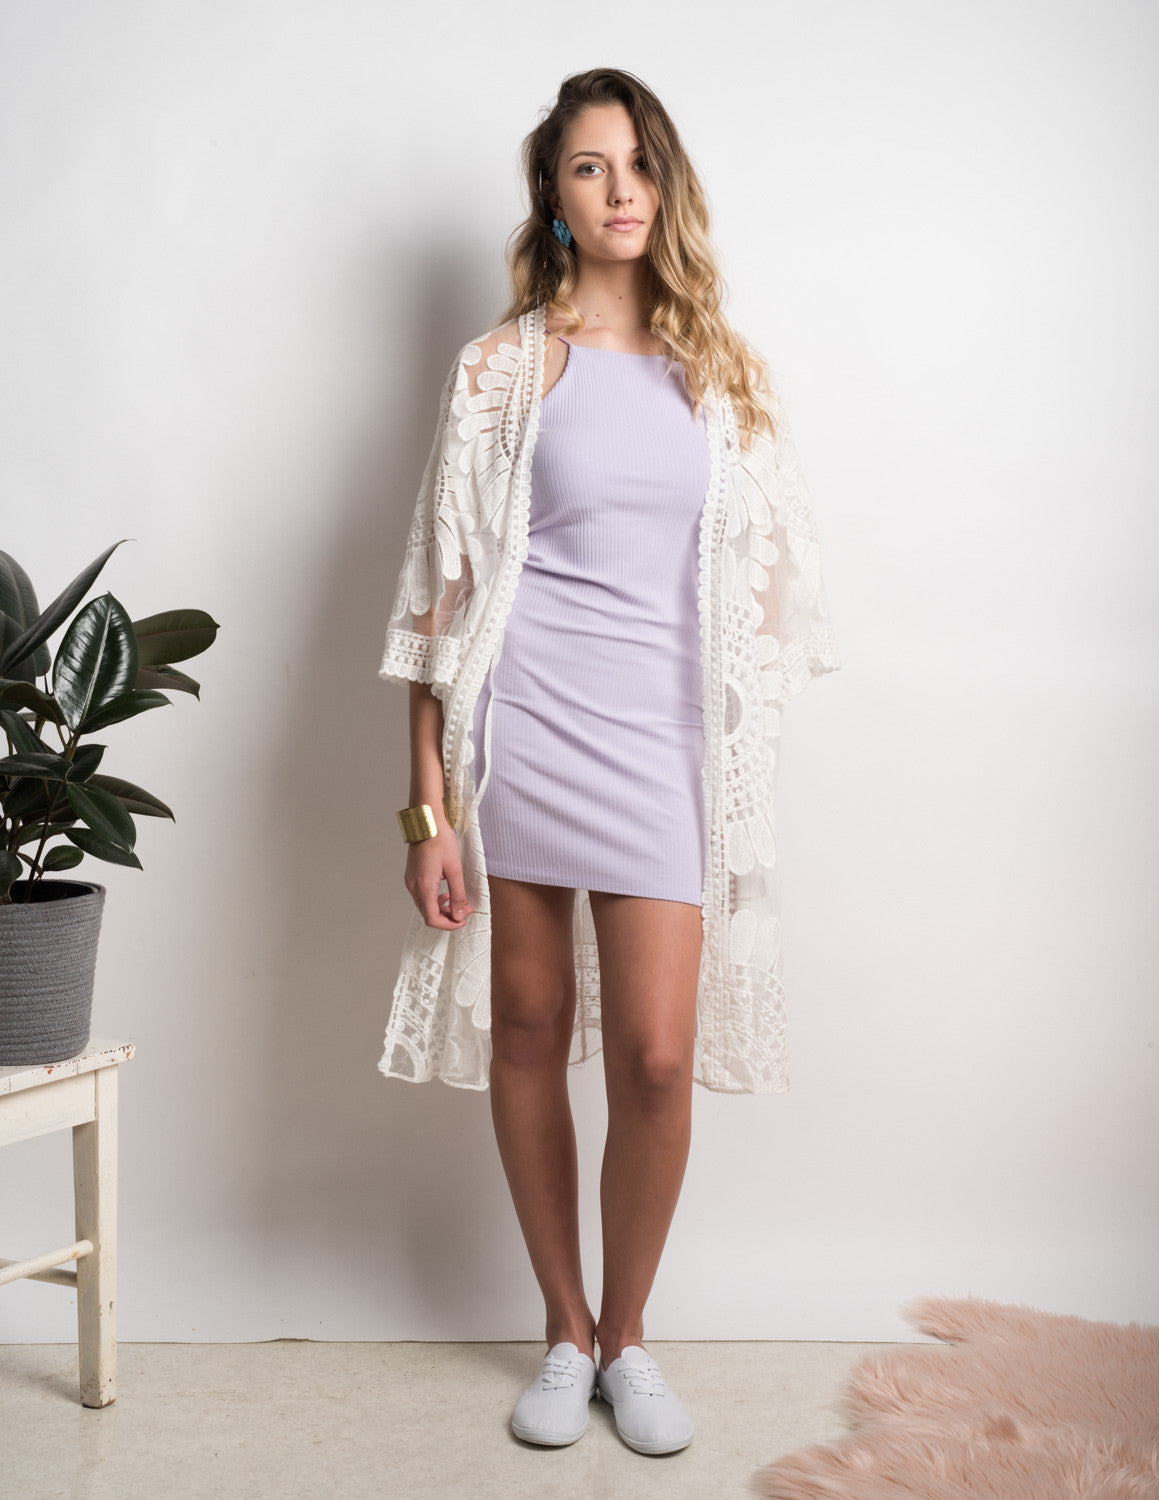 Lace vintage sheer floral kimono – The Clothes Loop